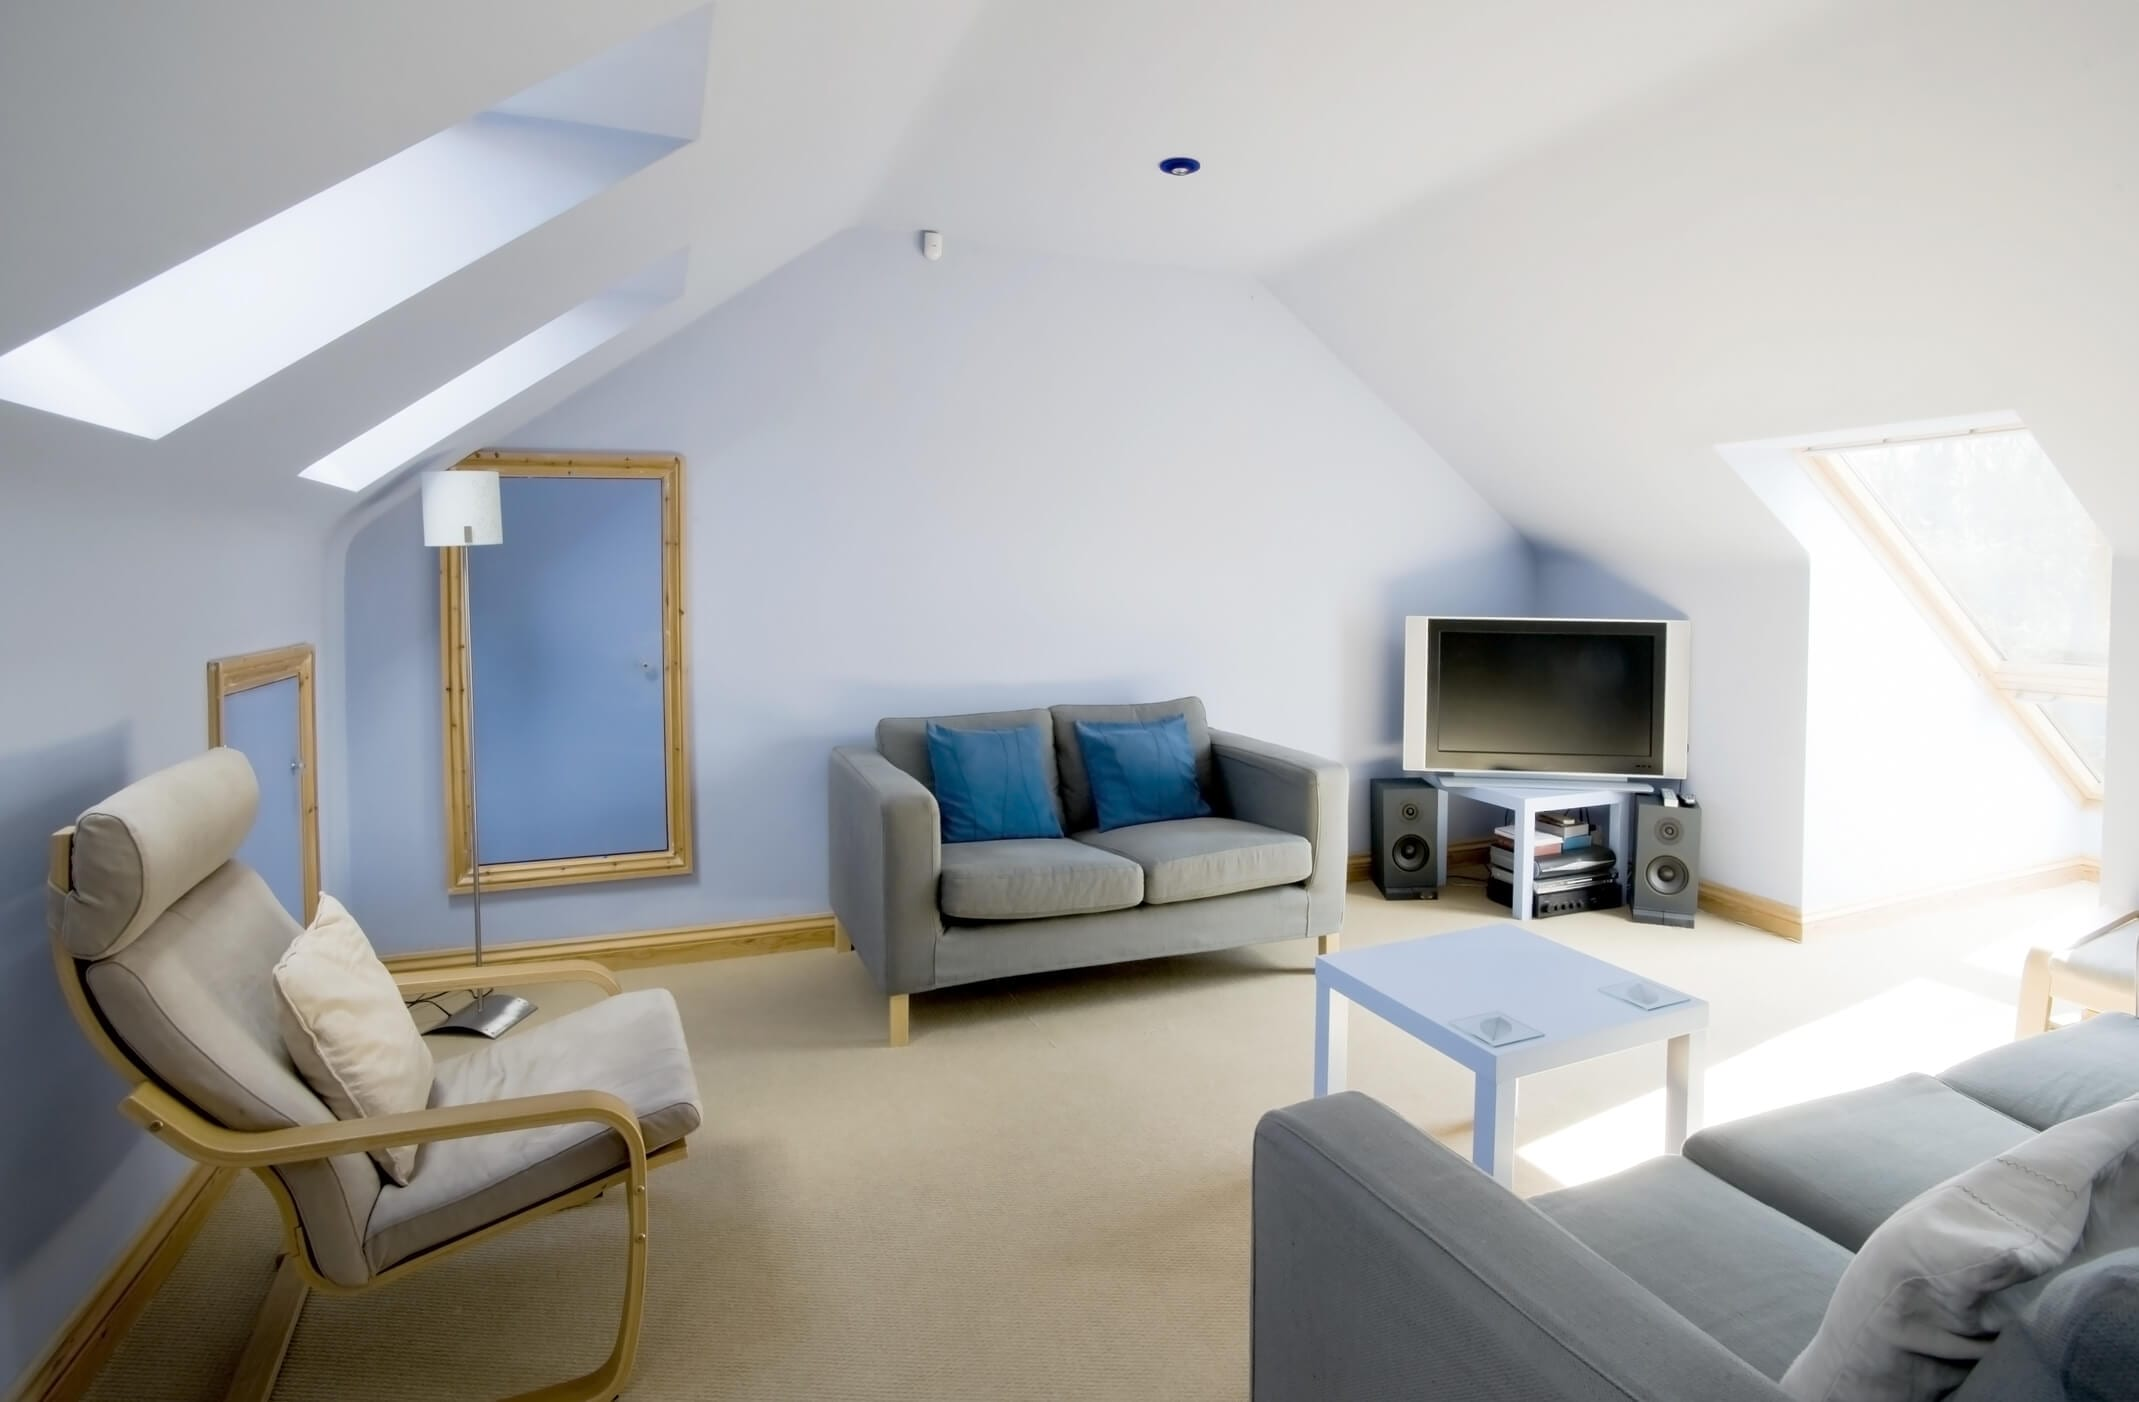 Loft Conversions in Bristol